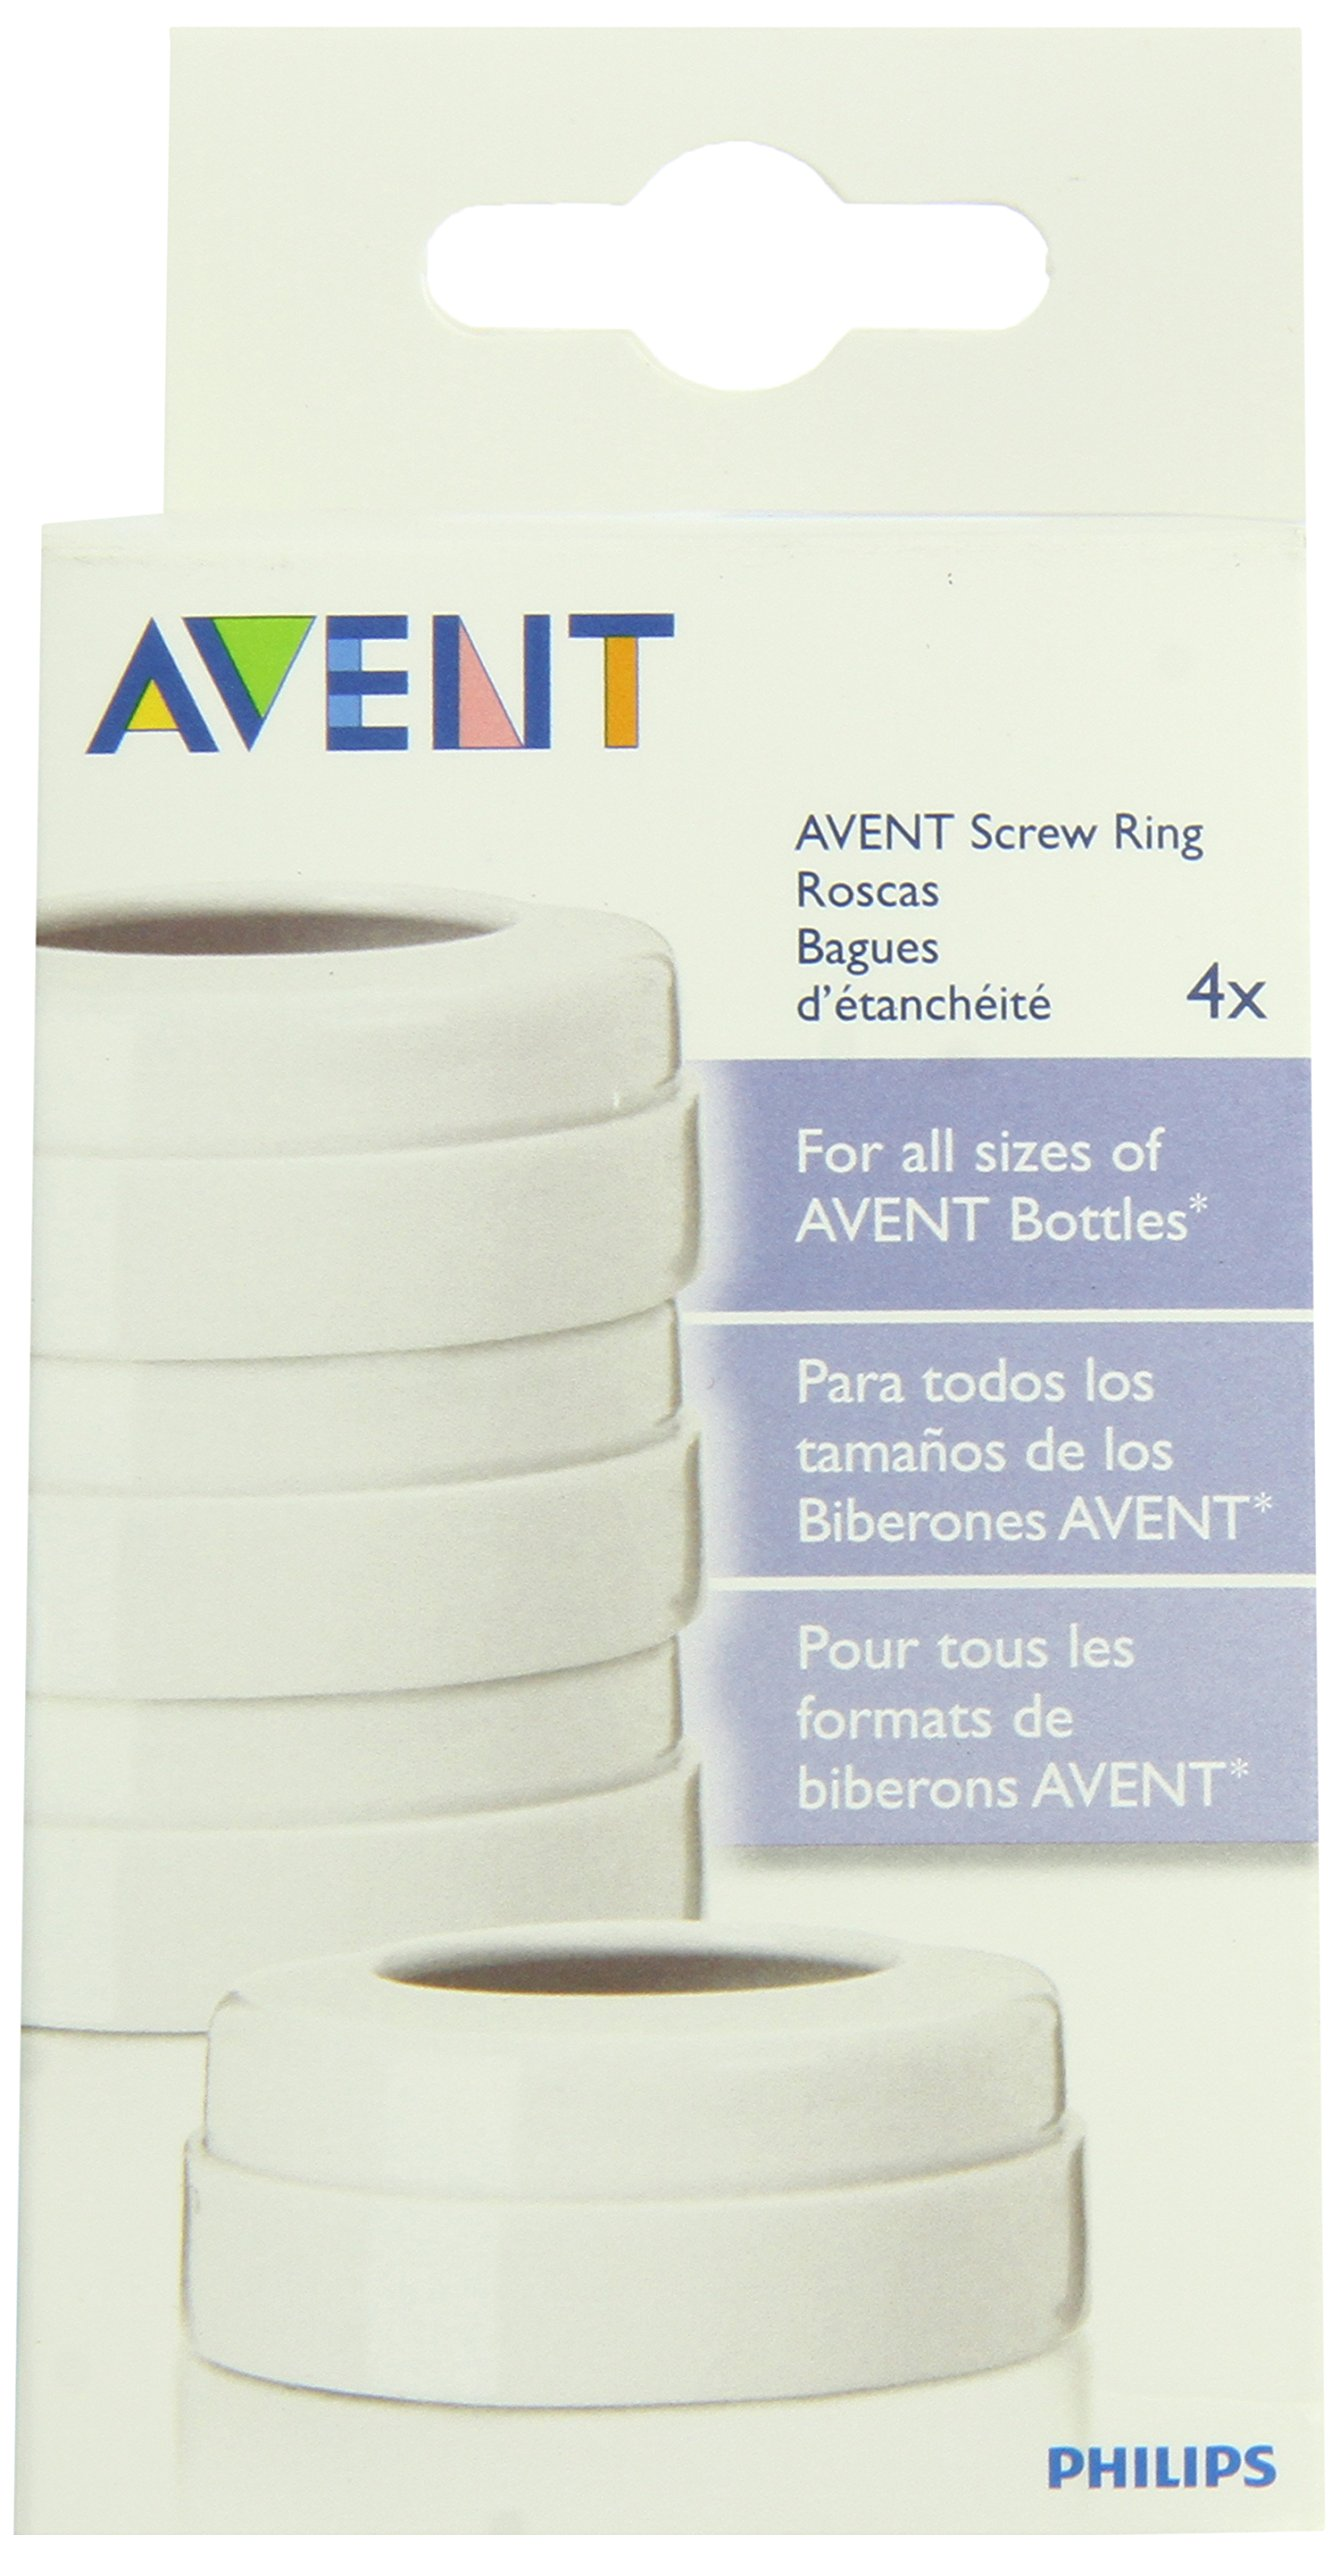 Philips AVENT BPA Free Classic Bottle Screw Rings, 4-Pack